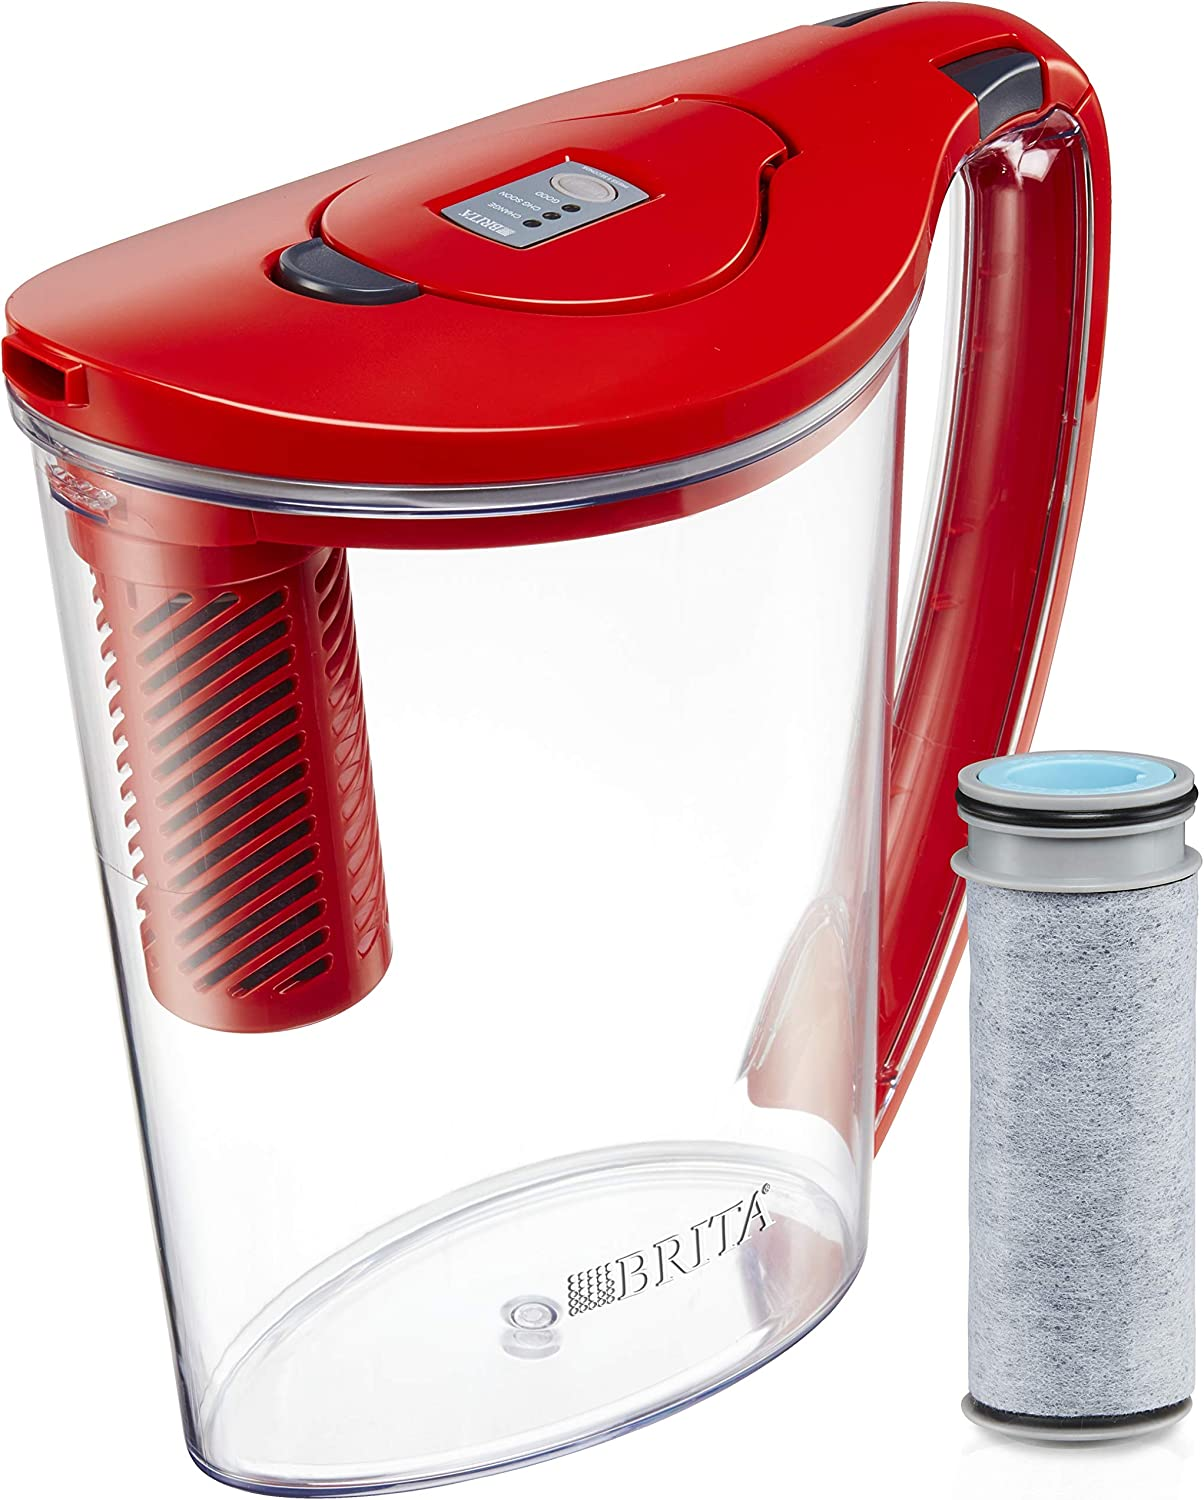 New Brita Stream 10Cup Red Water Pitcher Filter As You Pour Fast Hydro BPA Free